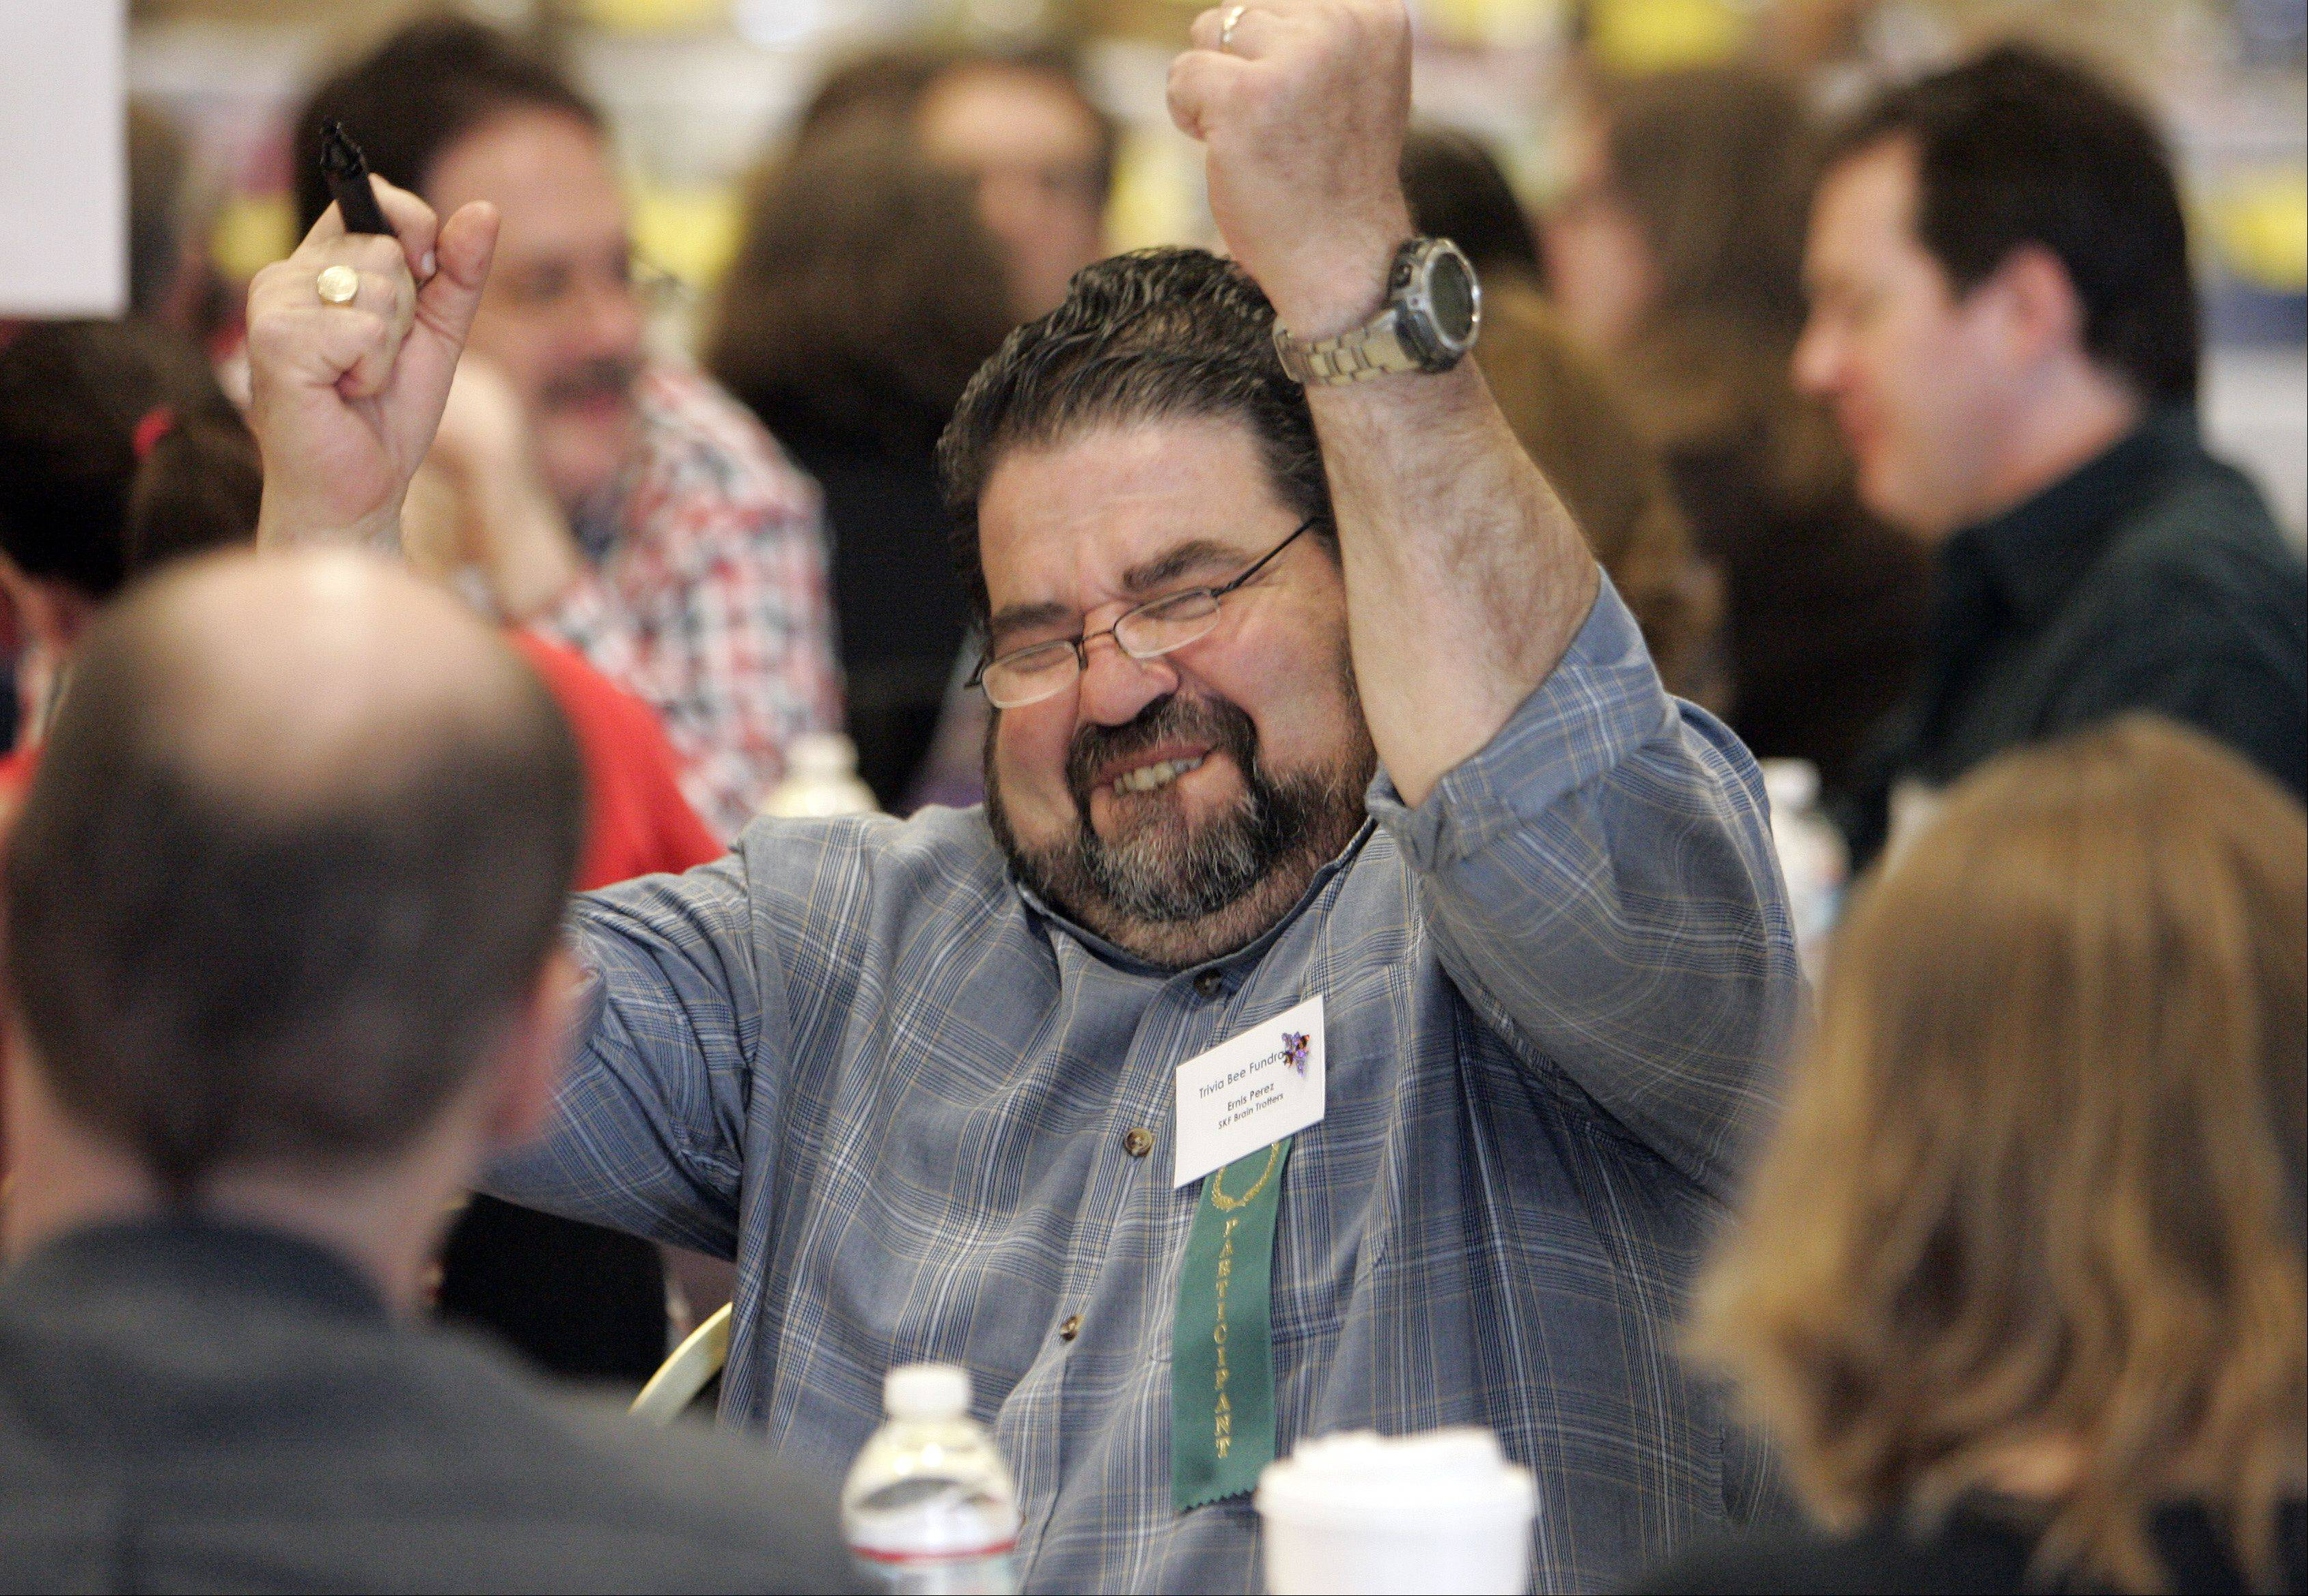 Ernis Perez of SKF Brain Trotters reacts after his team recorded a correct answer during the 16th annual Literacy Connection Trivia Bee Fundraiser Saturday at the Fox River Room Grand Victoria Casino in Elgin.